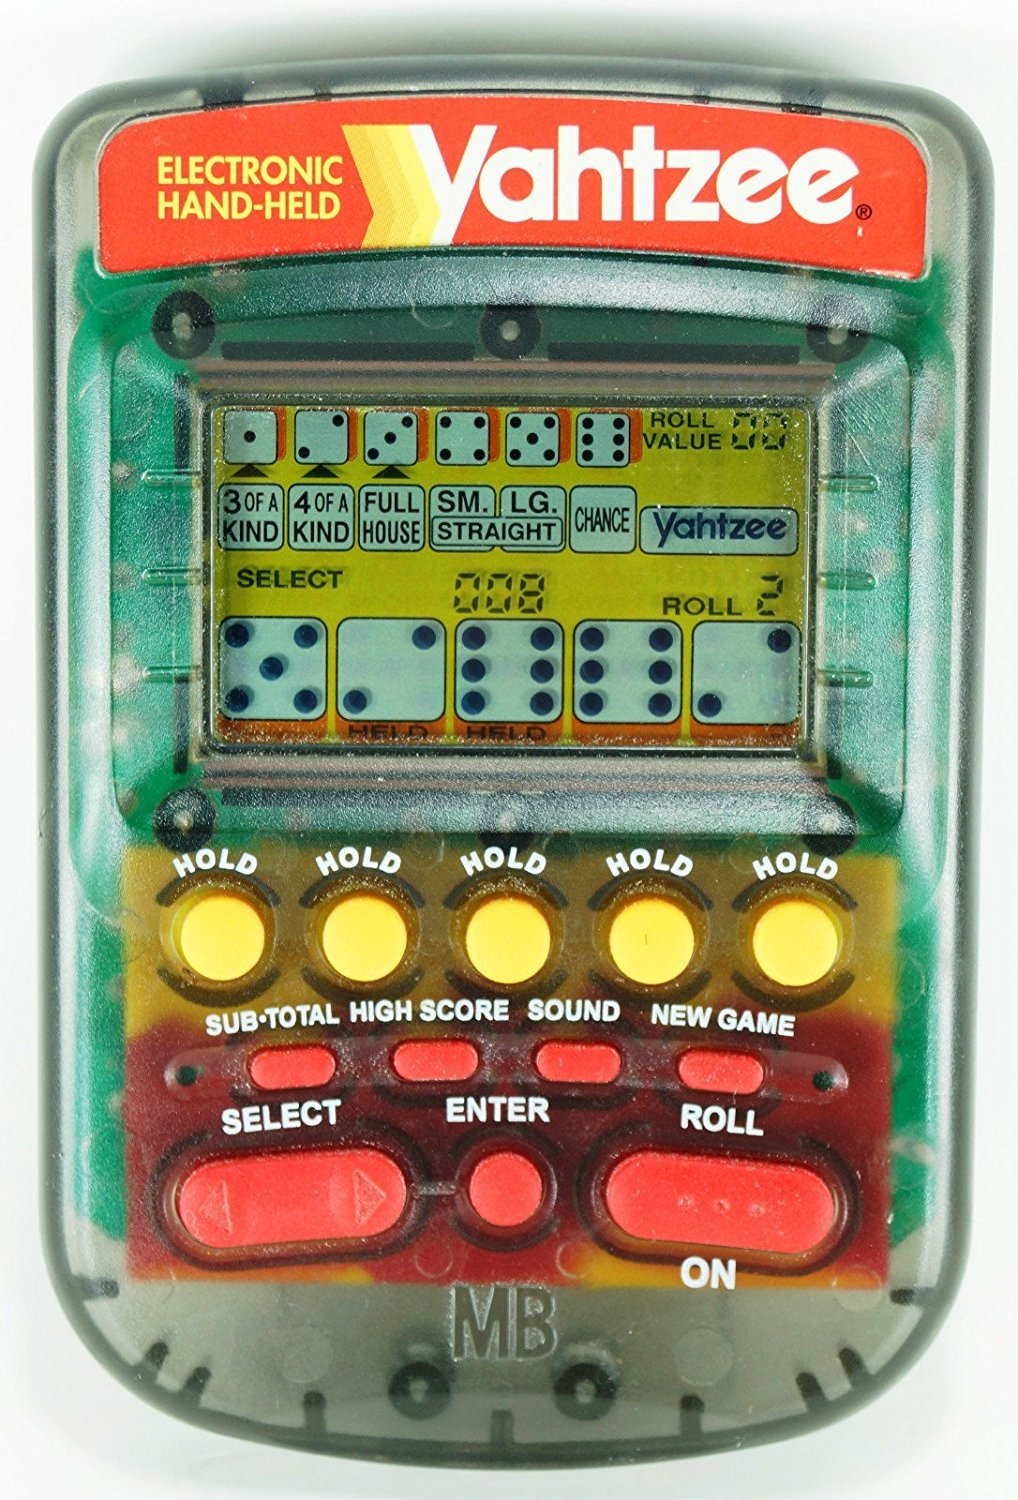 YAHTZEE Electronic Handheld Game (CLEAR SMOKE CASE/1995) by Milton Bradley